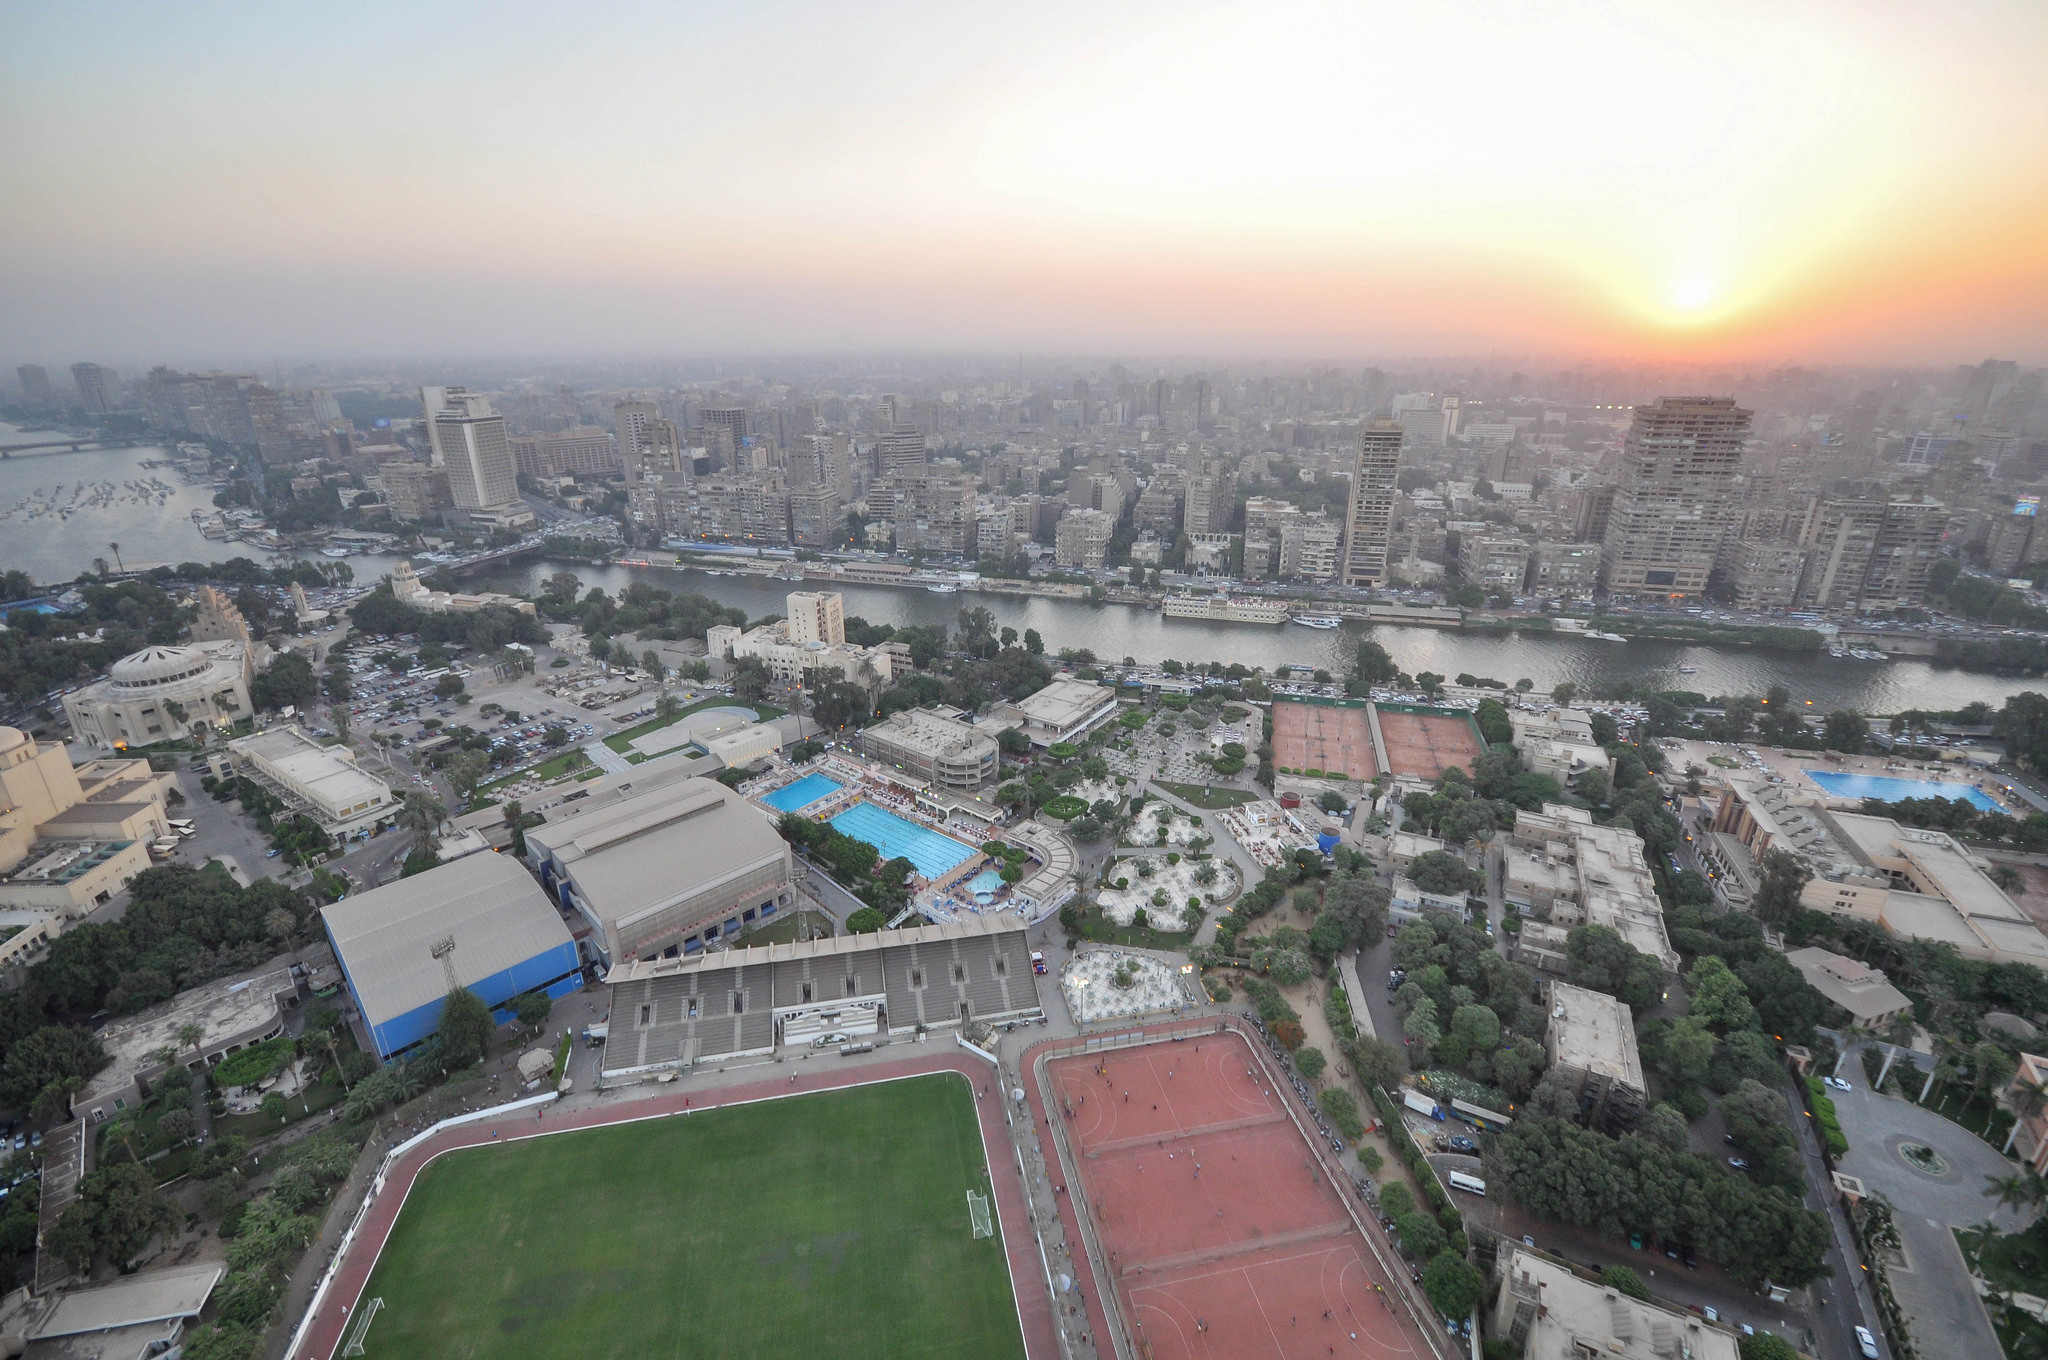 An aerial view of the Gezira Sporting Club. Photo: Jorge Láscar, via Flickr